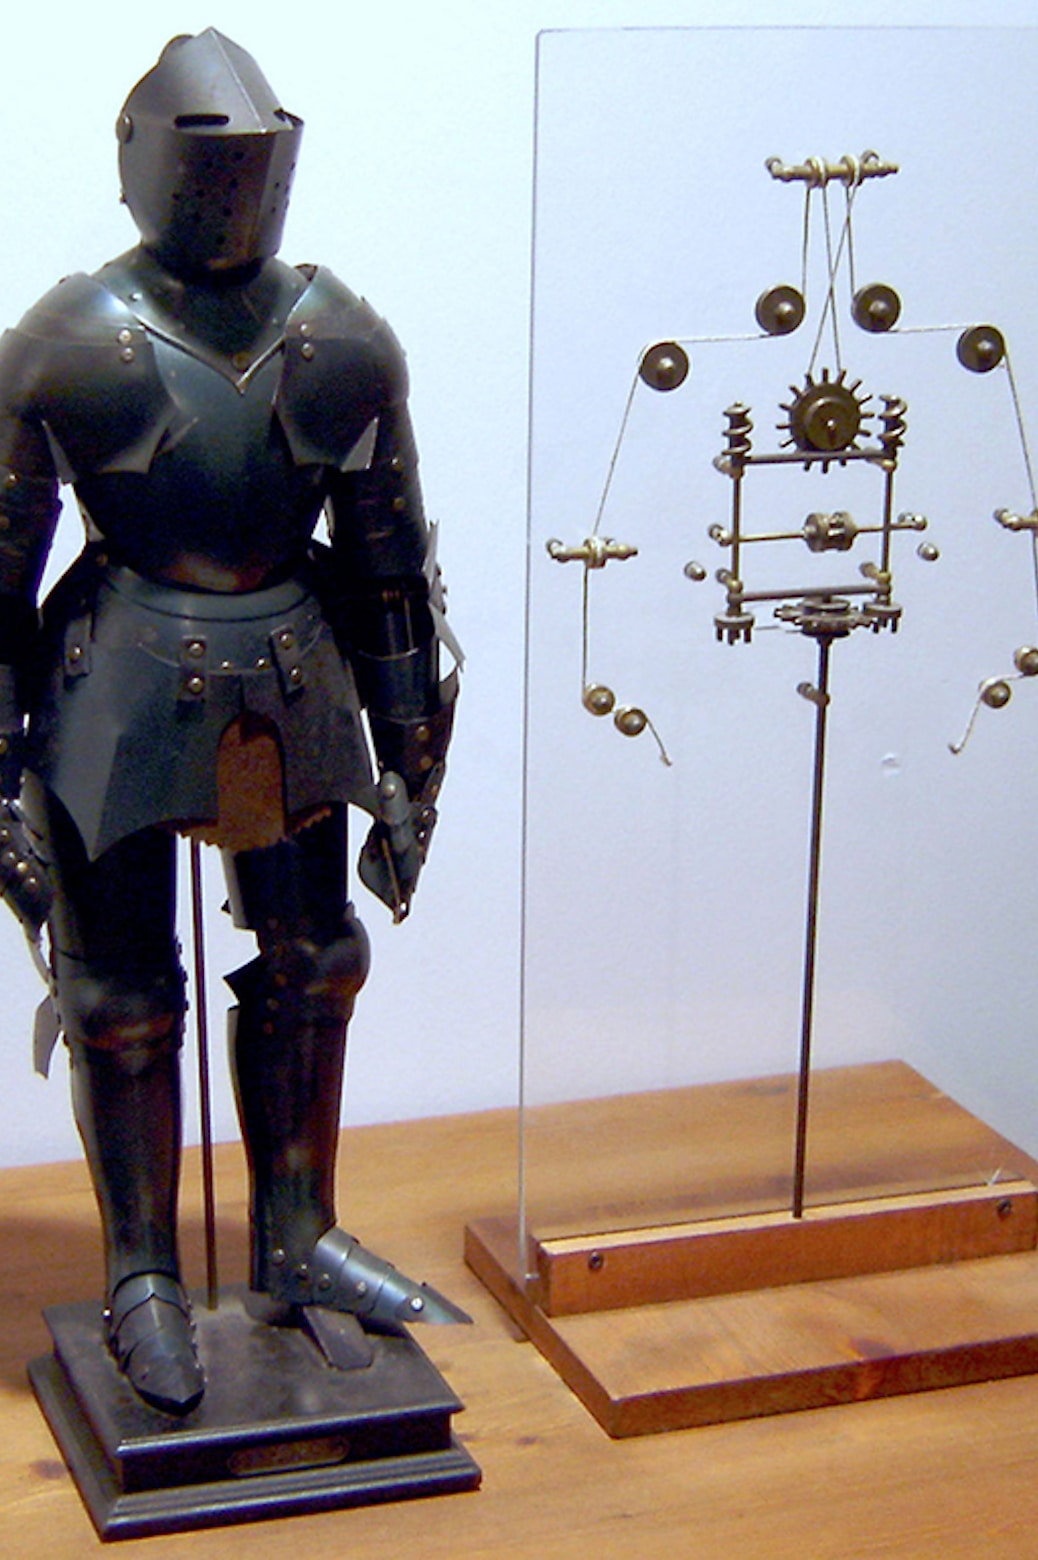 A model of a mechanical knight based on Leonardo DaVinci's drawings